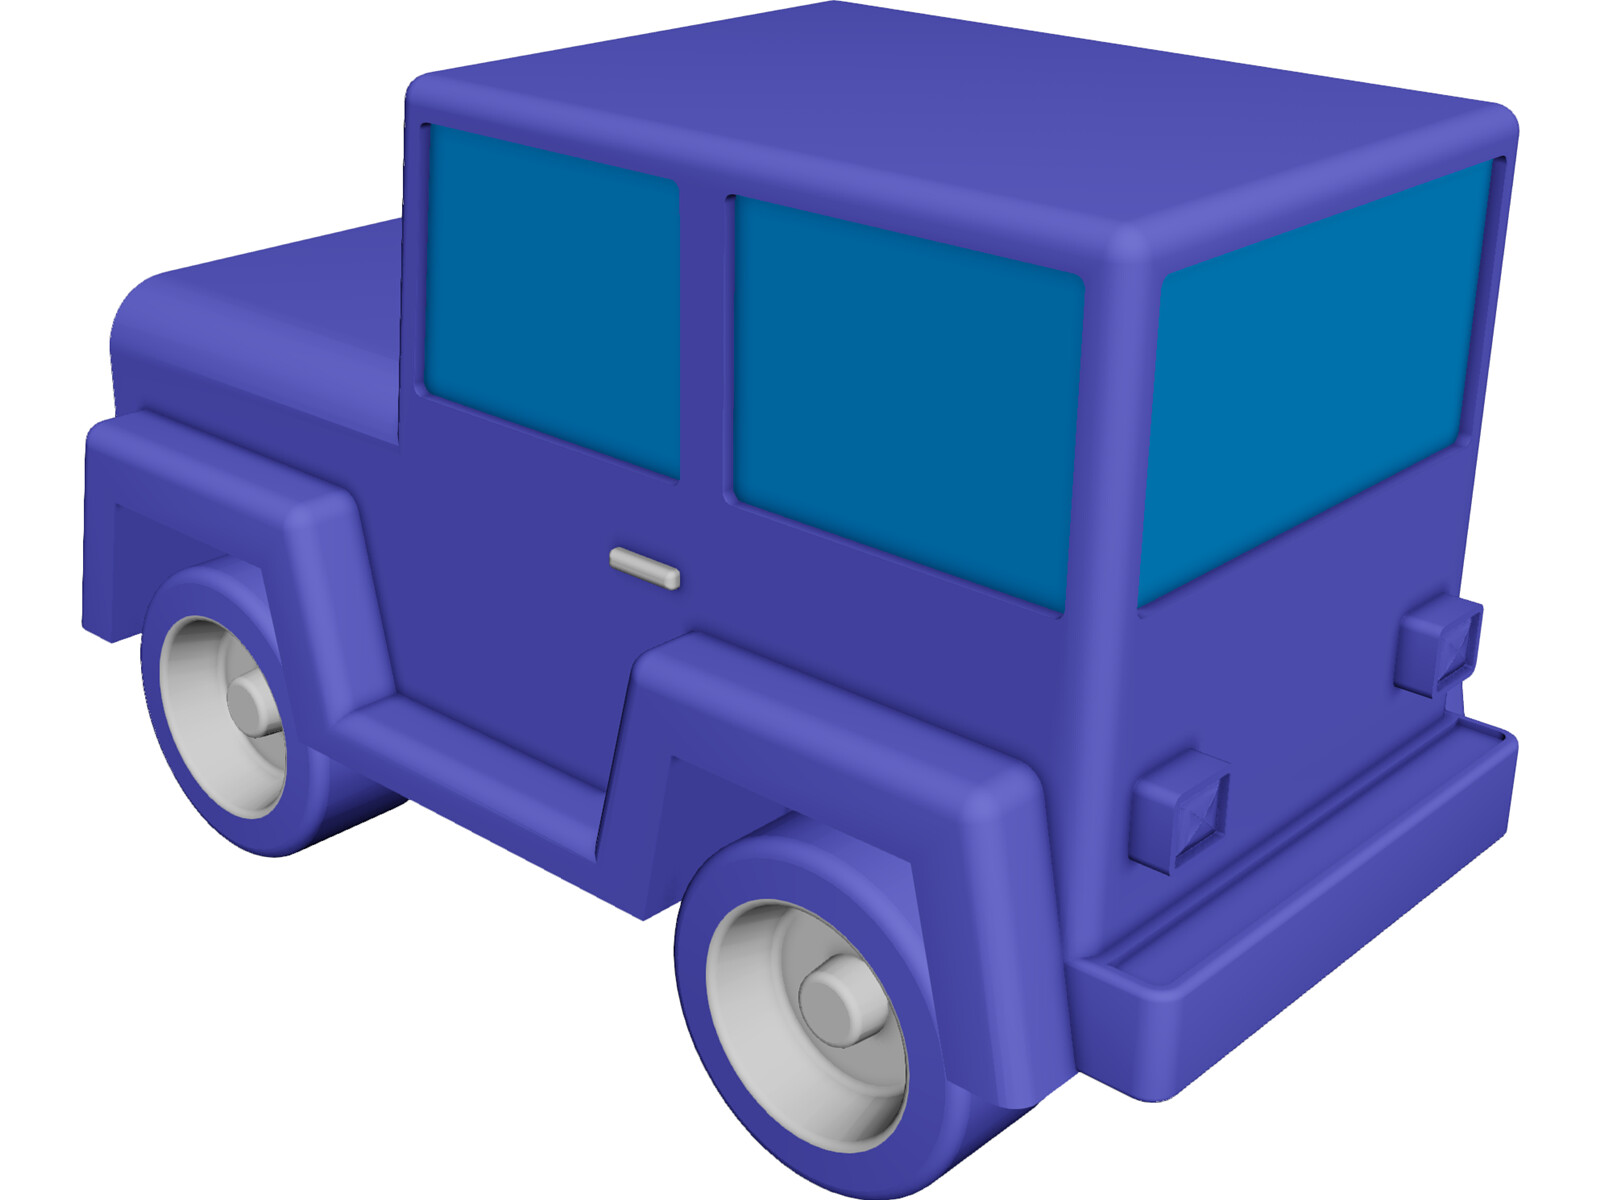 Jeep Toy Free 3d Cad Model Download 3d Cad Browser